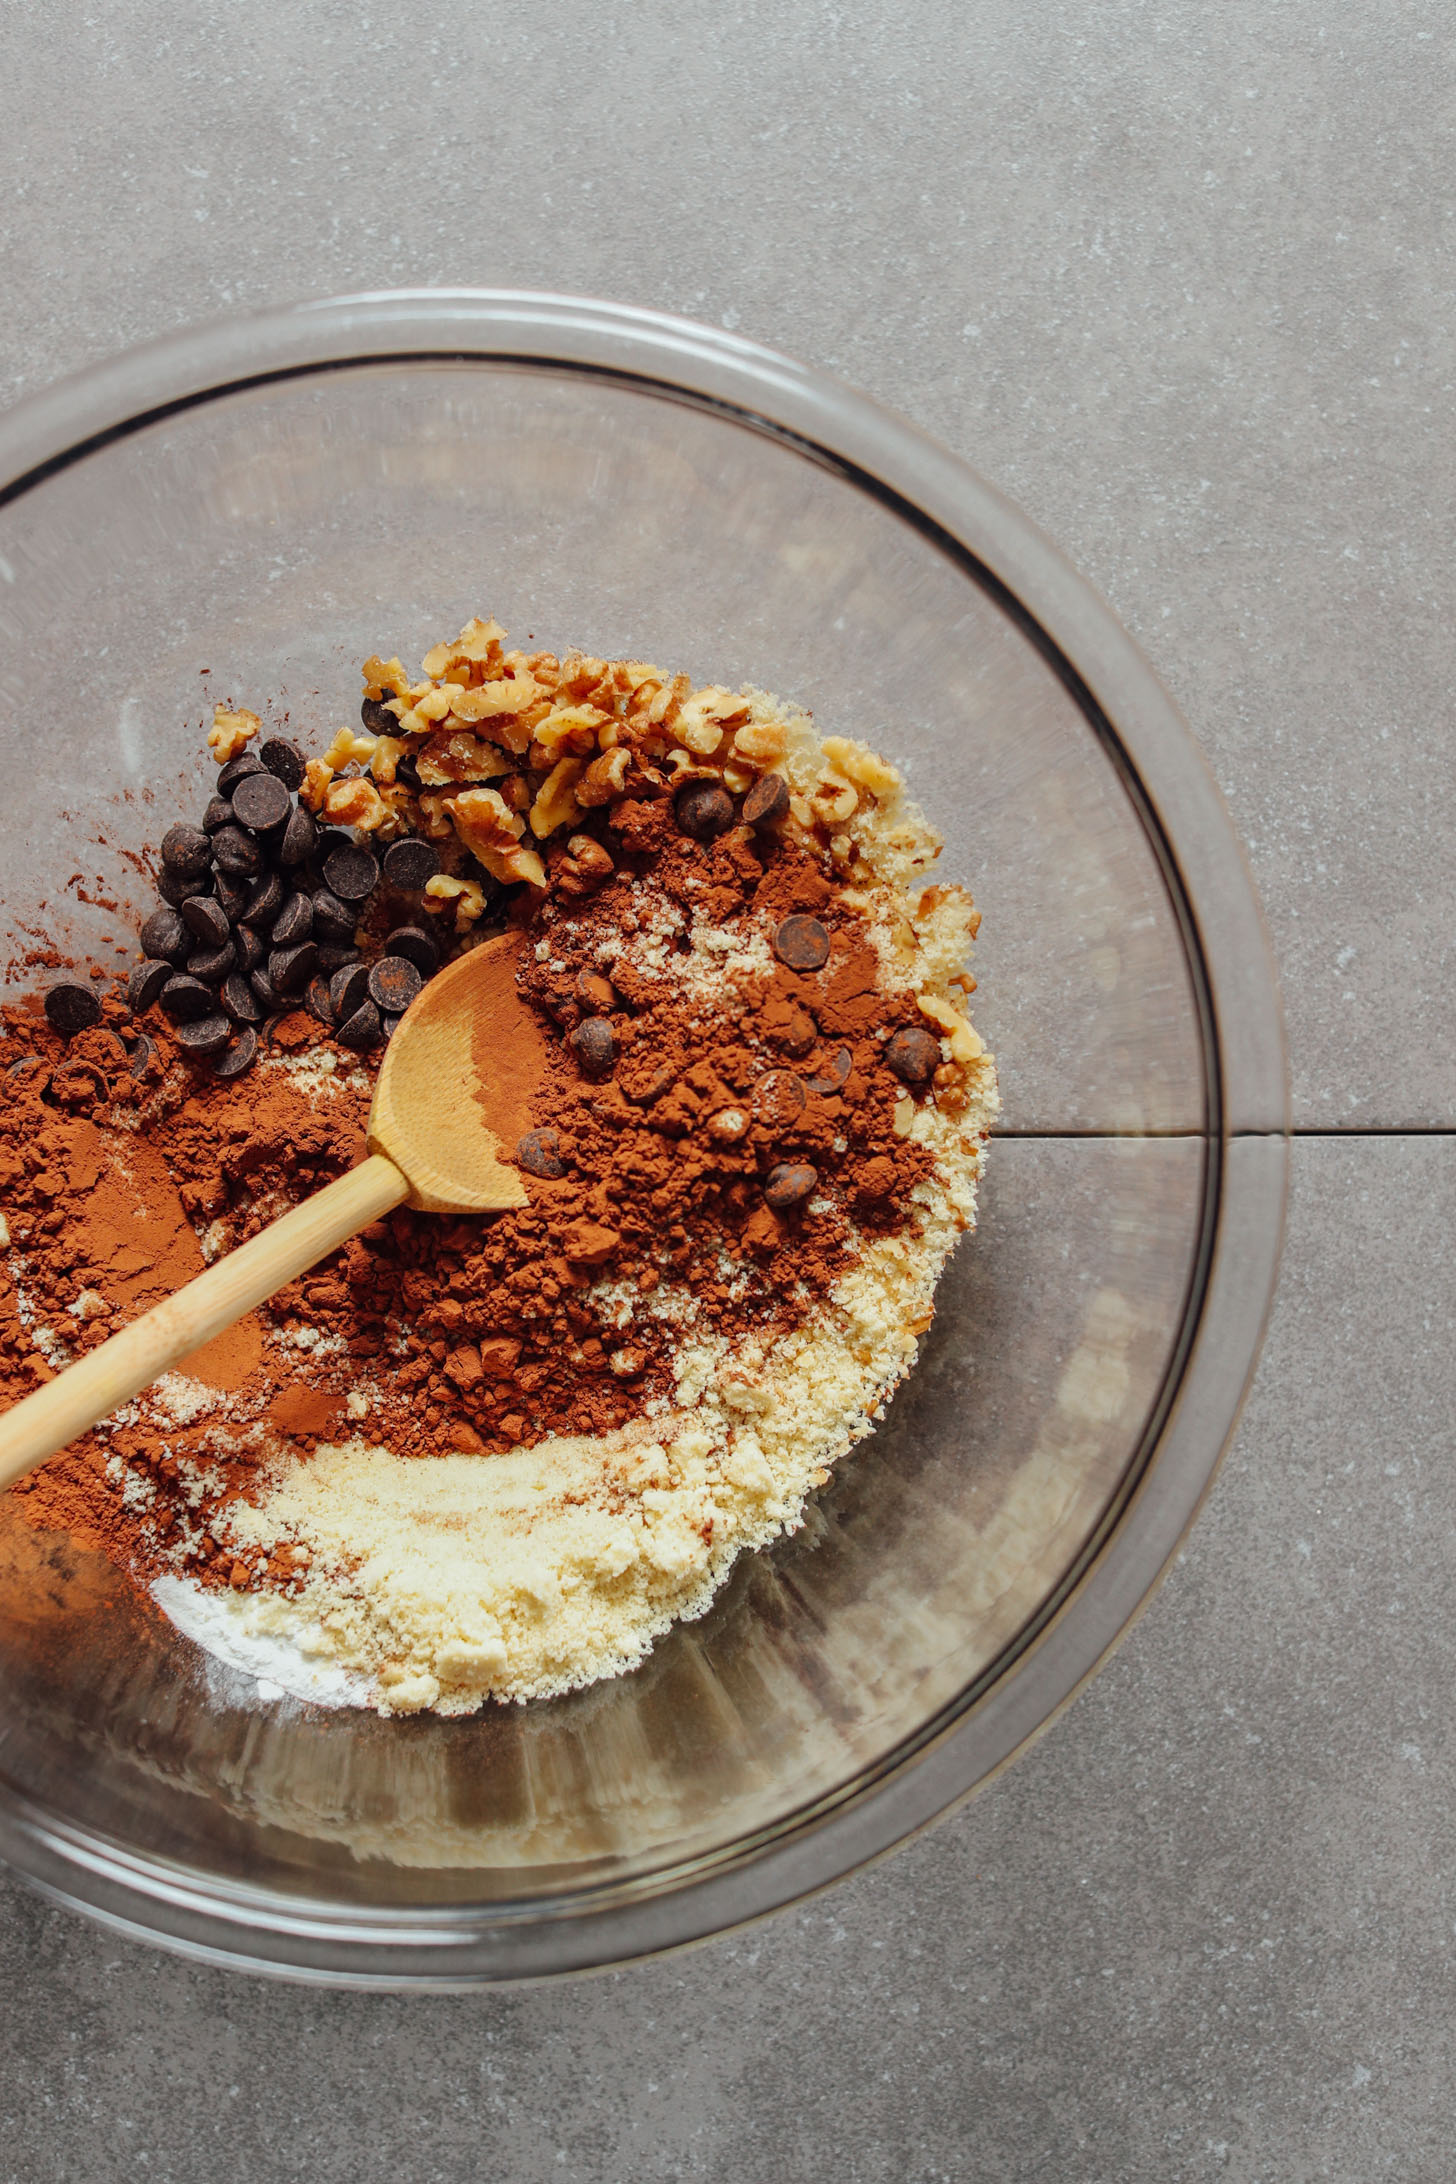 Mixing bowl with dry ingredients for making these decadent Vegan Brownie Cookies